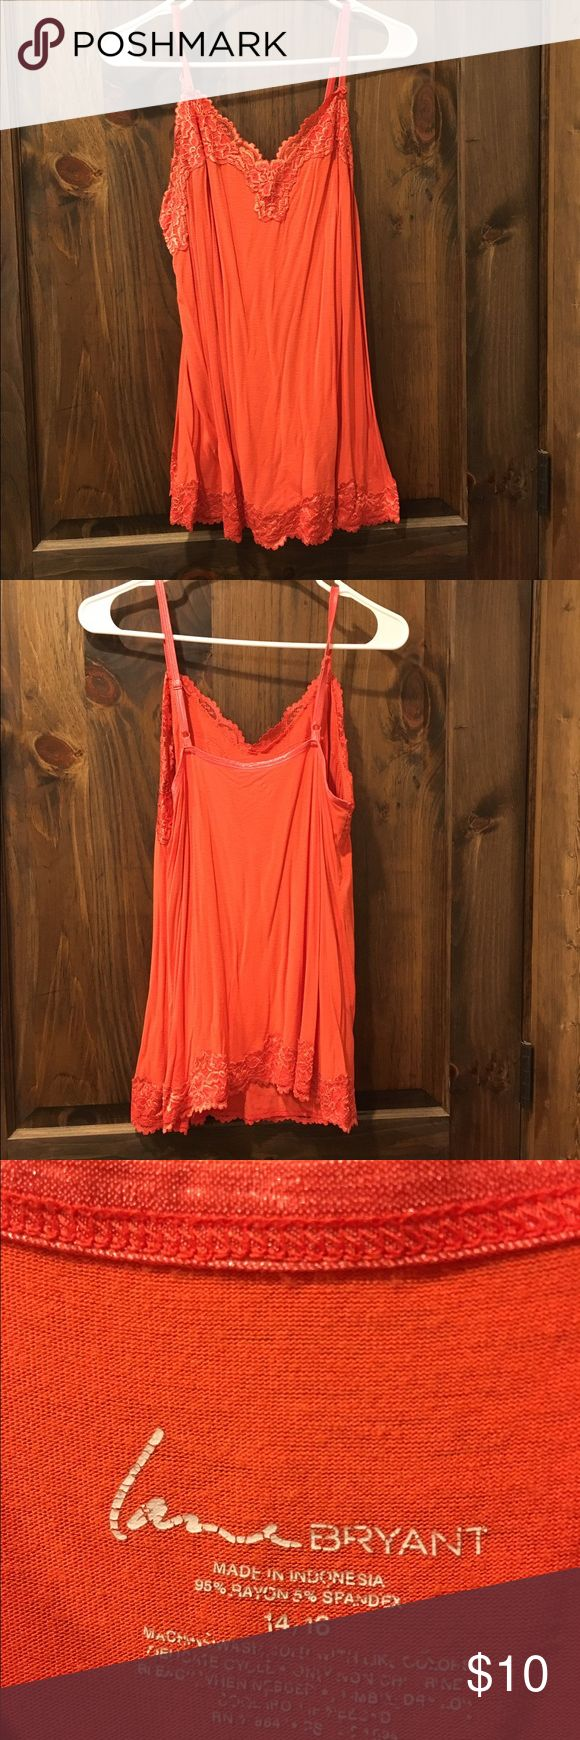 Lane Bryant Orange Cami Lane Bryant Orange Cami with lace detail and adjustable straps Lane Bryant Tops Camisoles